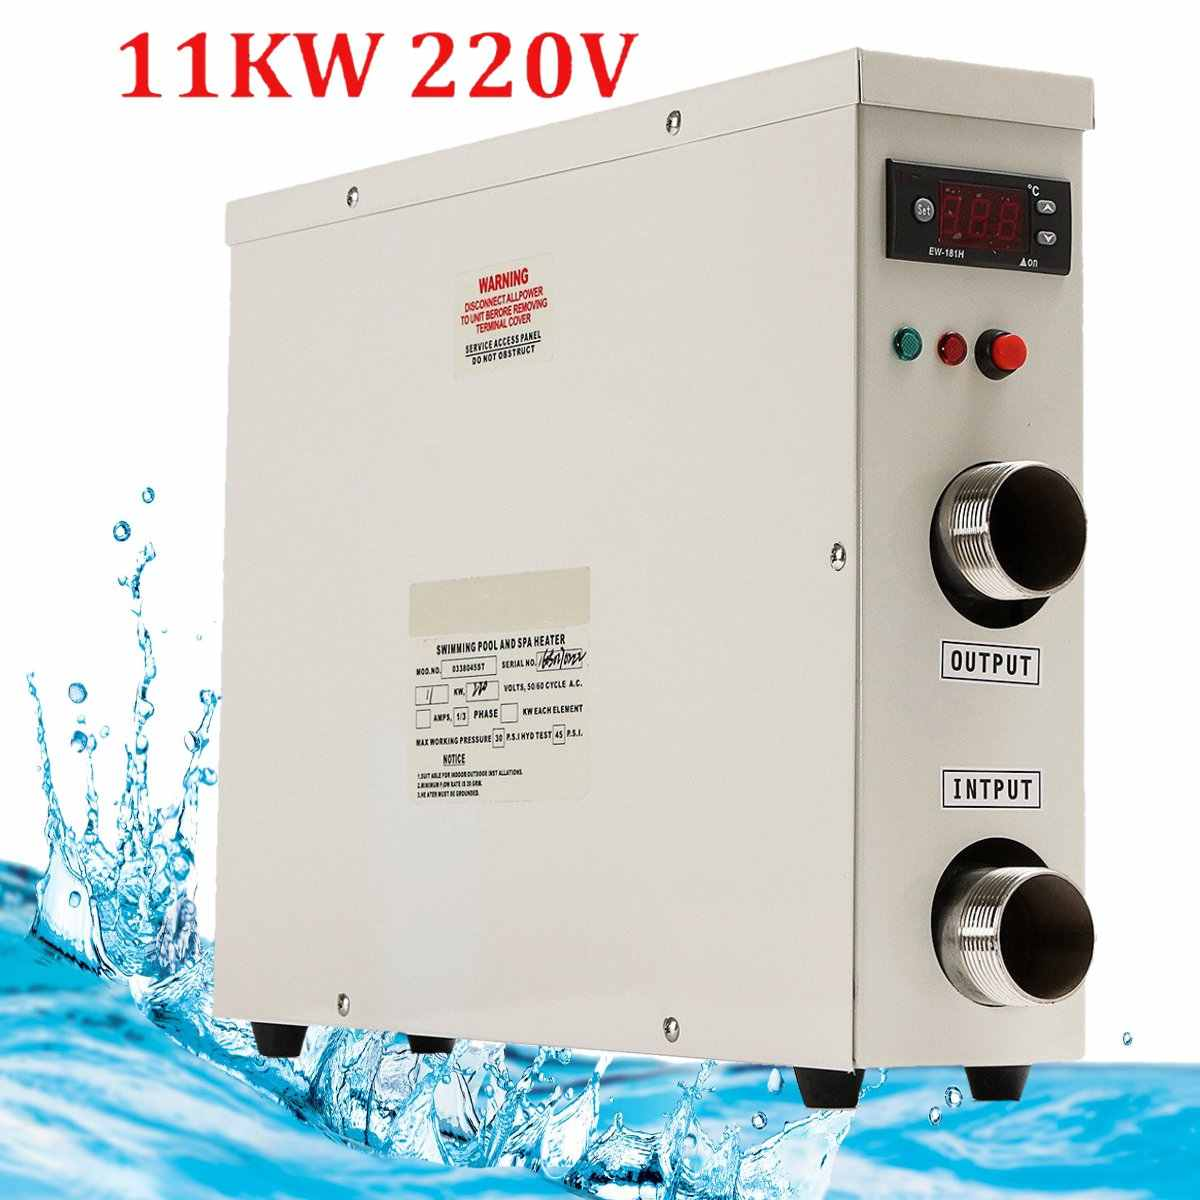 Water Heater Thermostat 220V 11KW High-Power Swimming Pool Thermostat SPA Bath Portable Pool Heater Electric Water Heater Thermostat Heater Pump